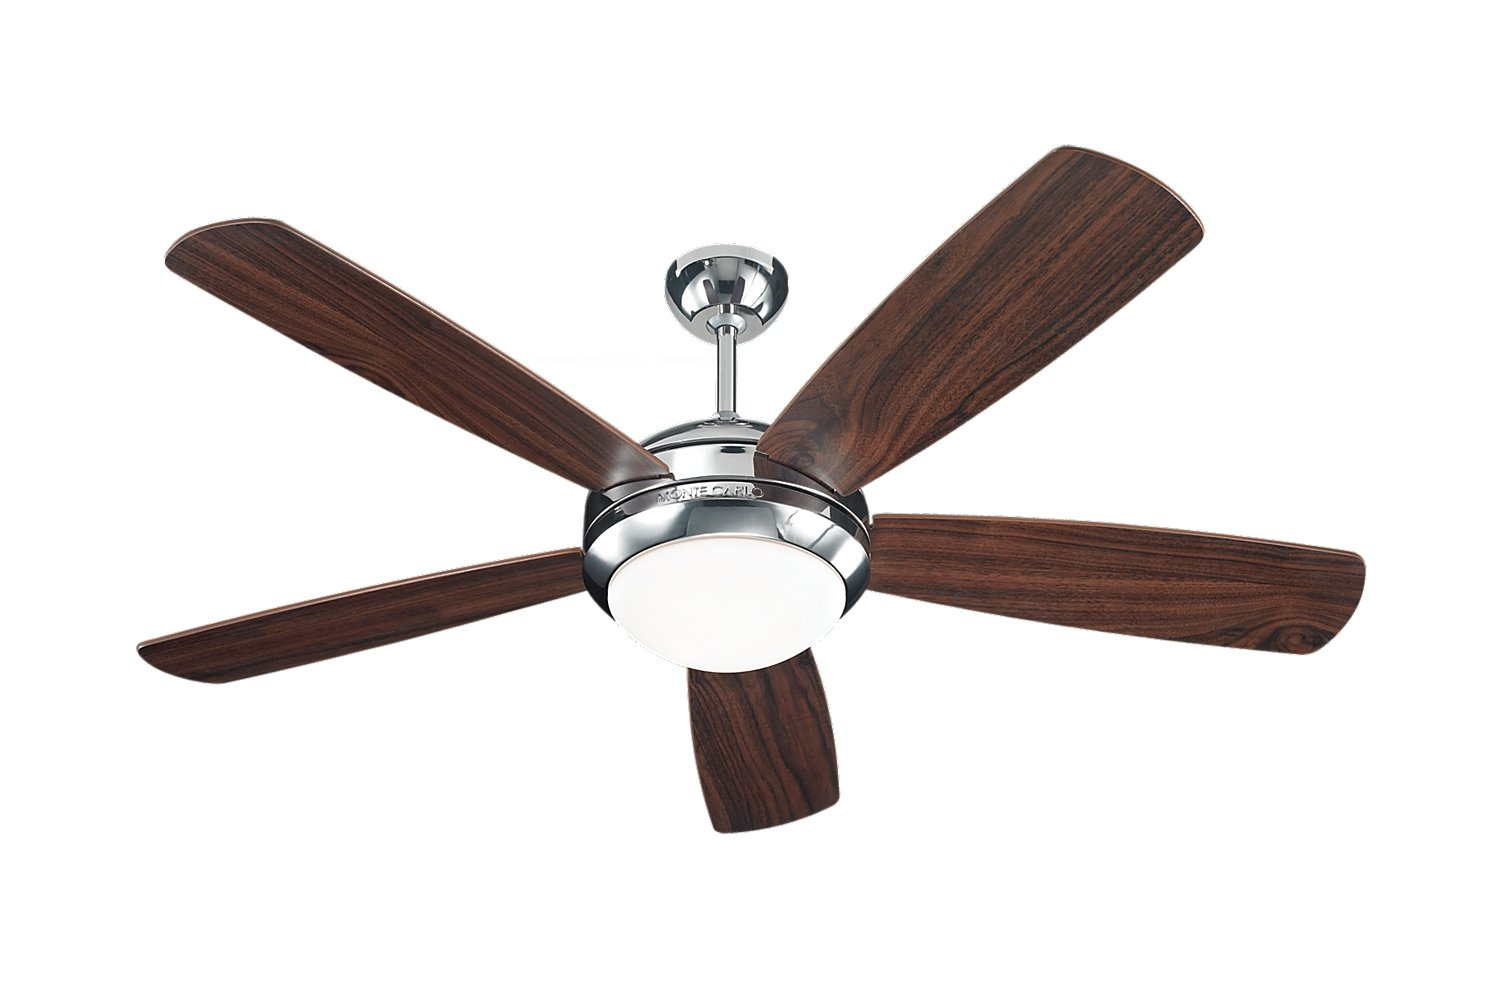 Top ceiling fans for outdoors and inside your home web donk mozeypictures Gallery